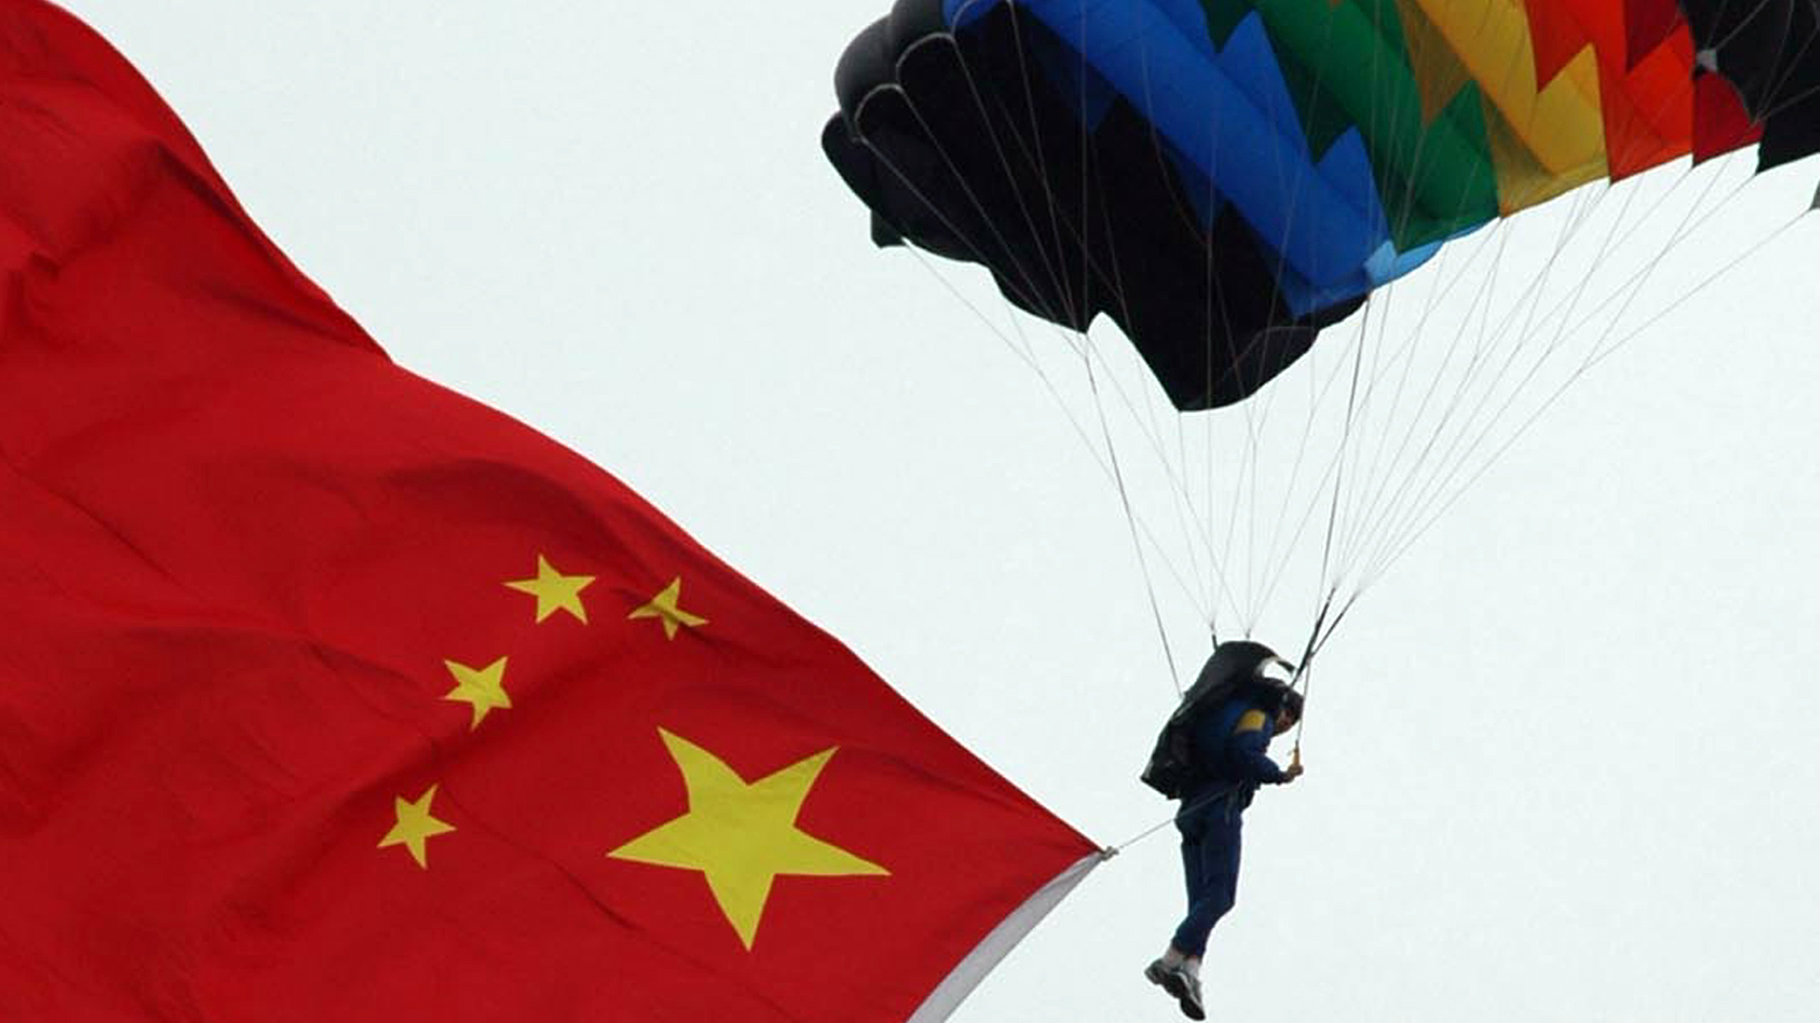 A soldier carrying a Chinese national flag parachutes over a stadium in Wuhu, east China's Anhui province, September 25, 2005. Various activities are held nationwide to celebrate the upcoming National Day that falls on October 1, 2005. Picture taken September 25, 2005. CHINA OUT REUTERS/China Newsphoto PP05090328